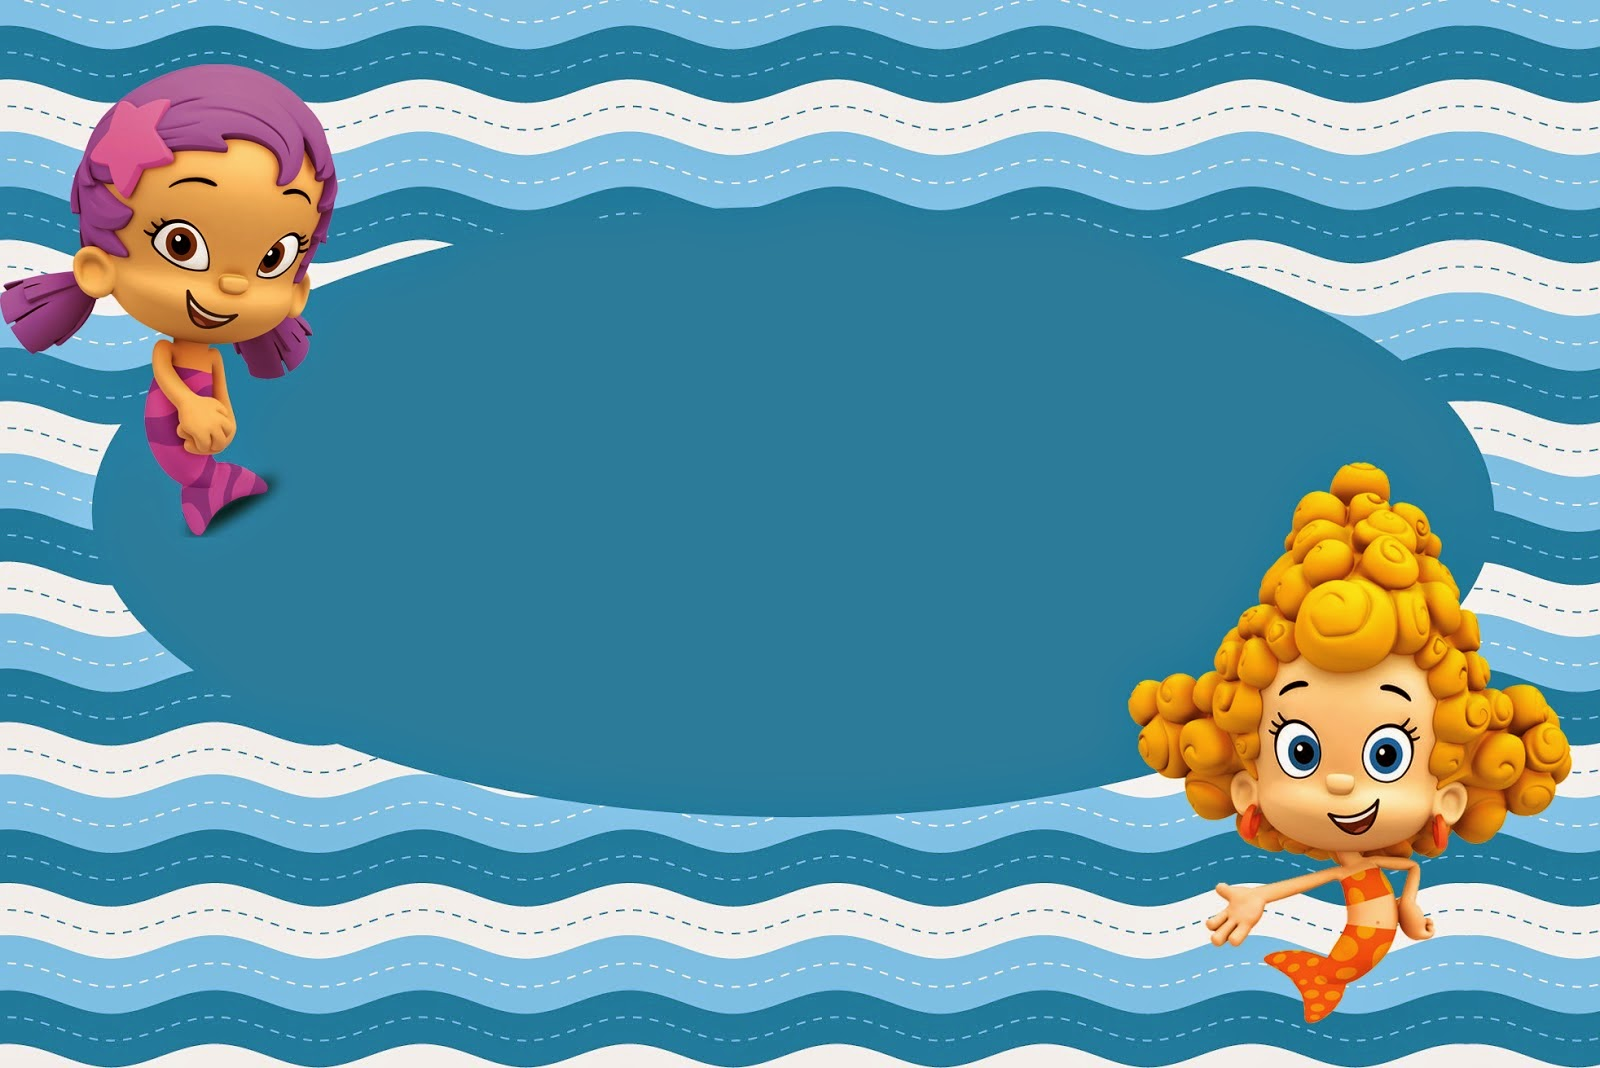 Bubble guppies birthday banner template maxwellsz